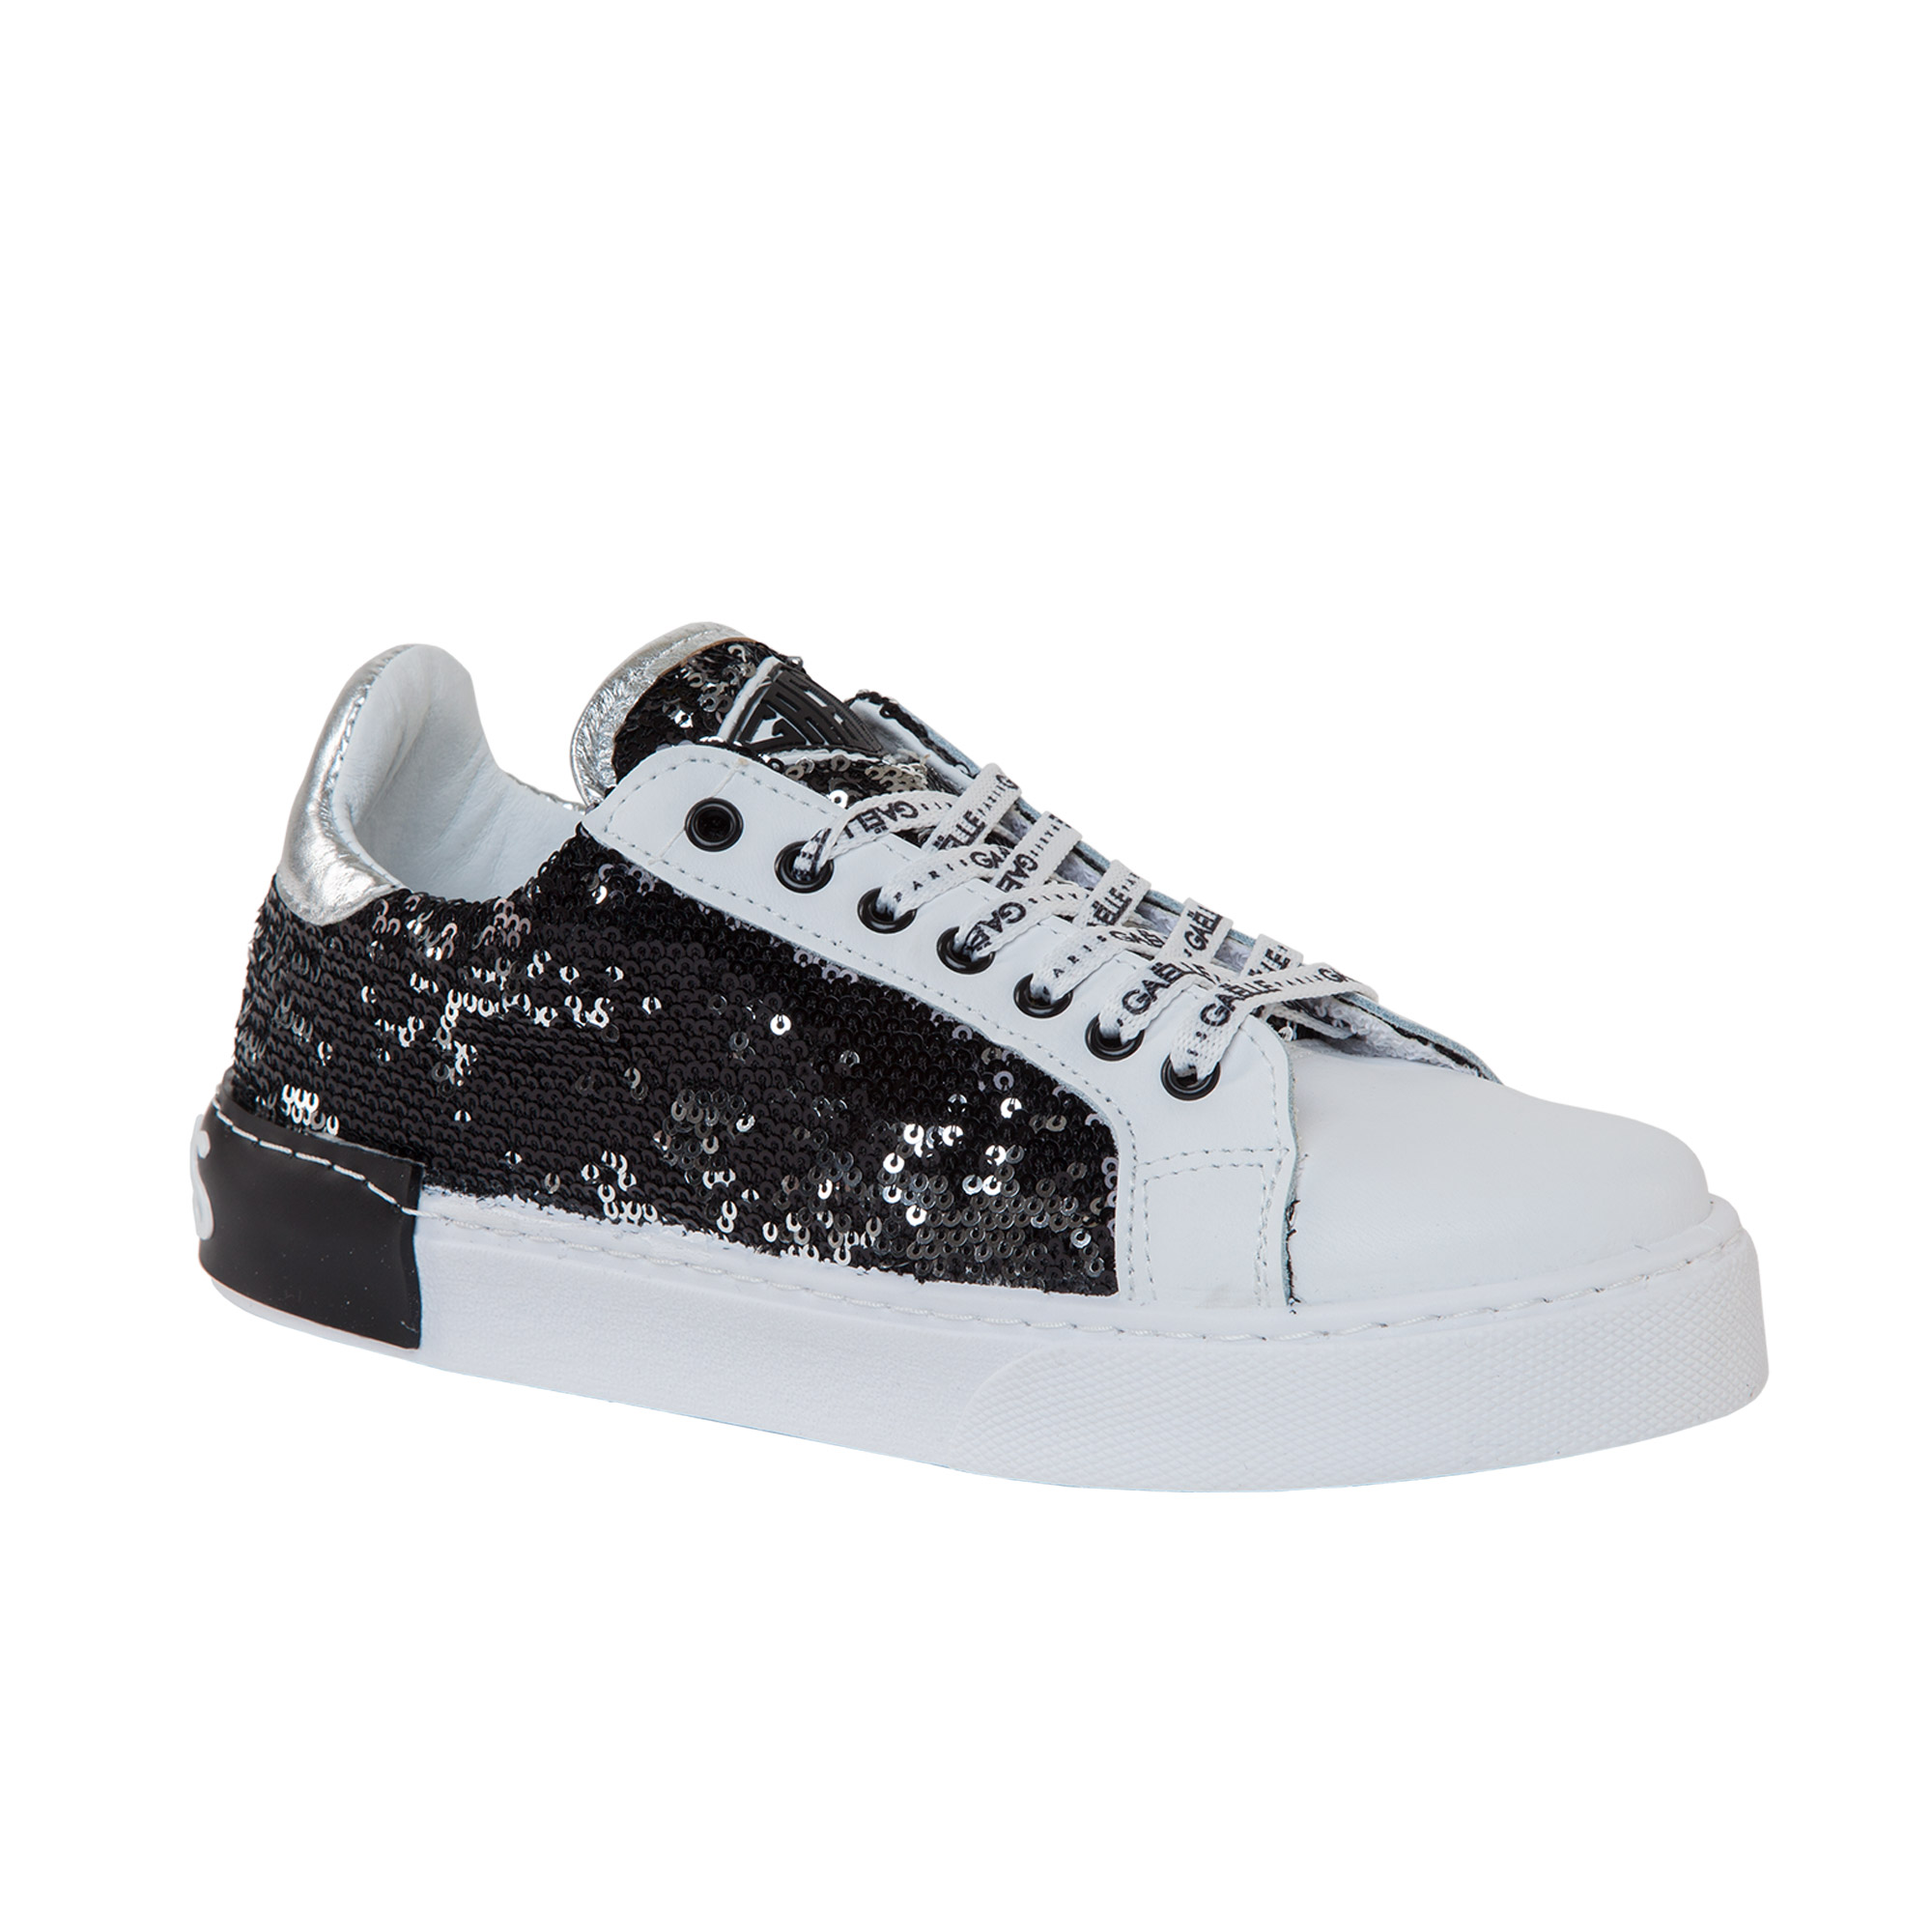 SNEAKERS - GBDA1314 - GAELLE PARIS